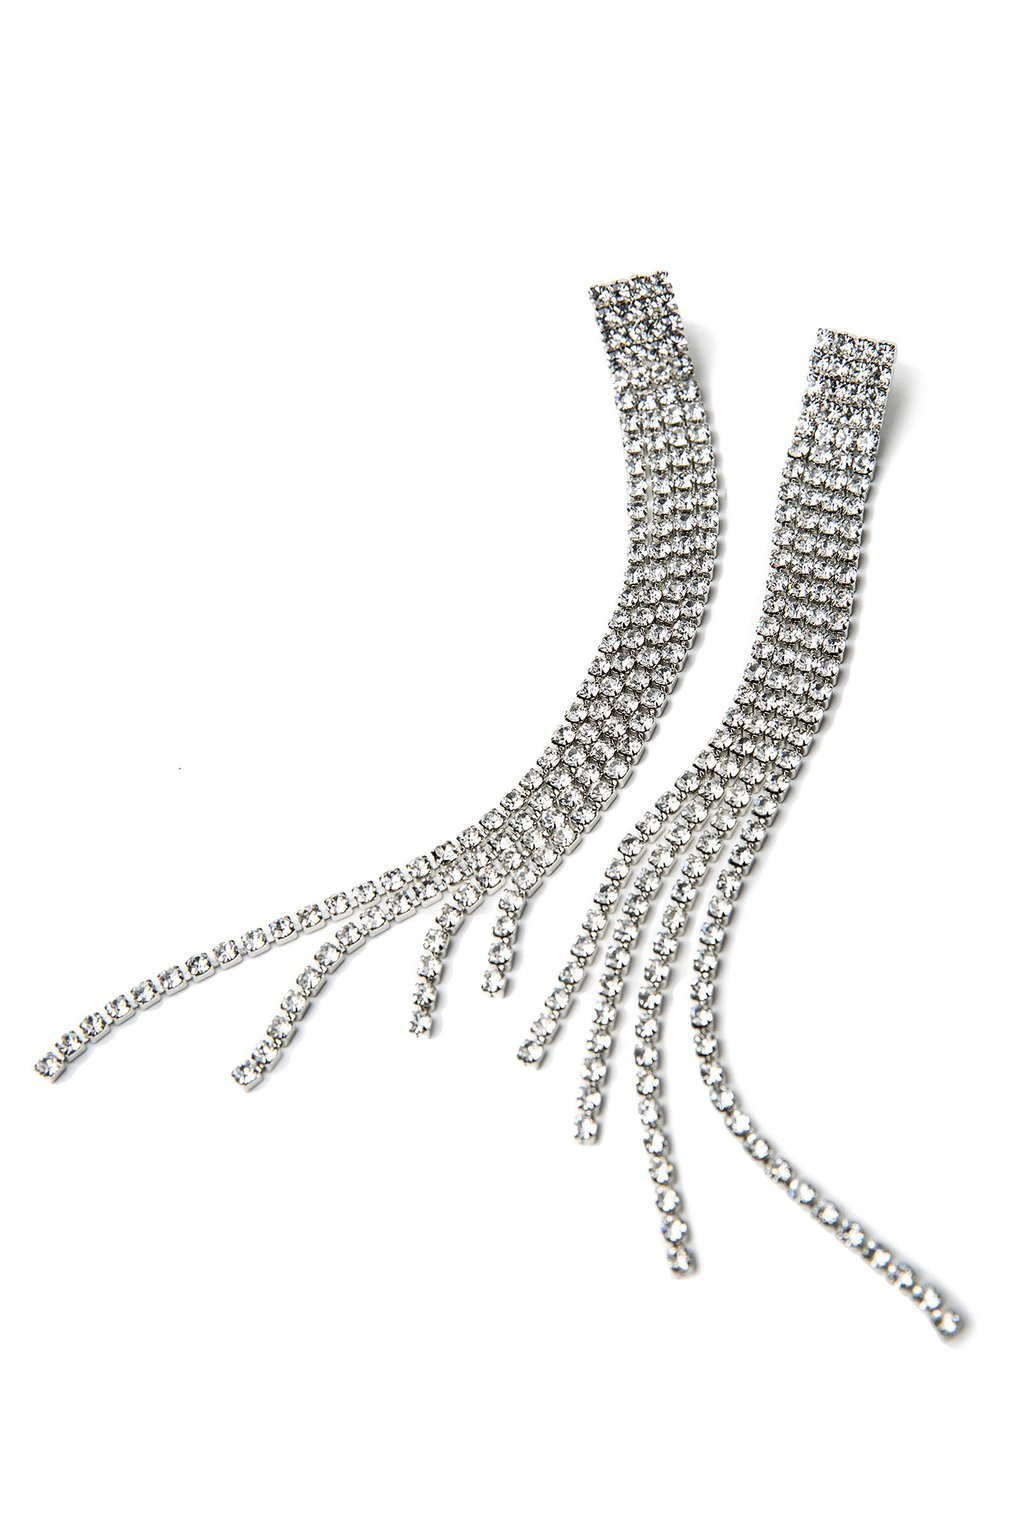 Hallie Earrings by J.ING women's clothing and accessories